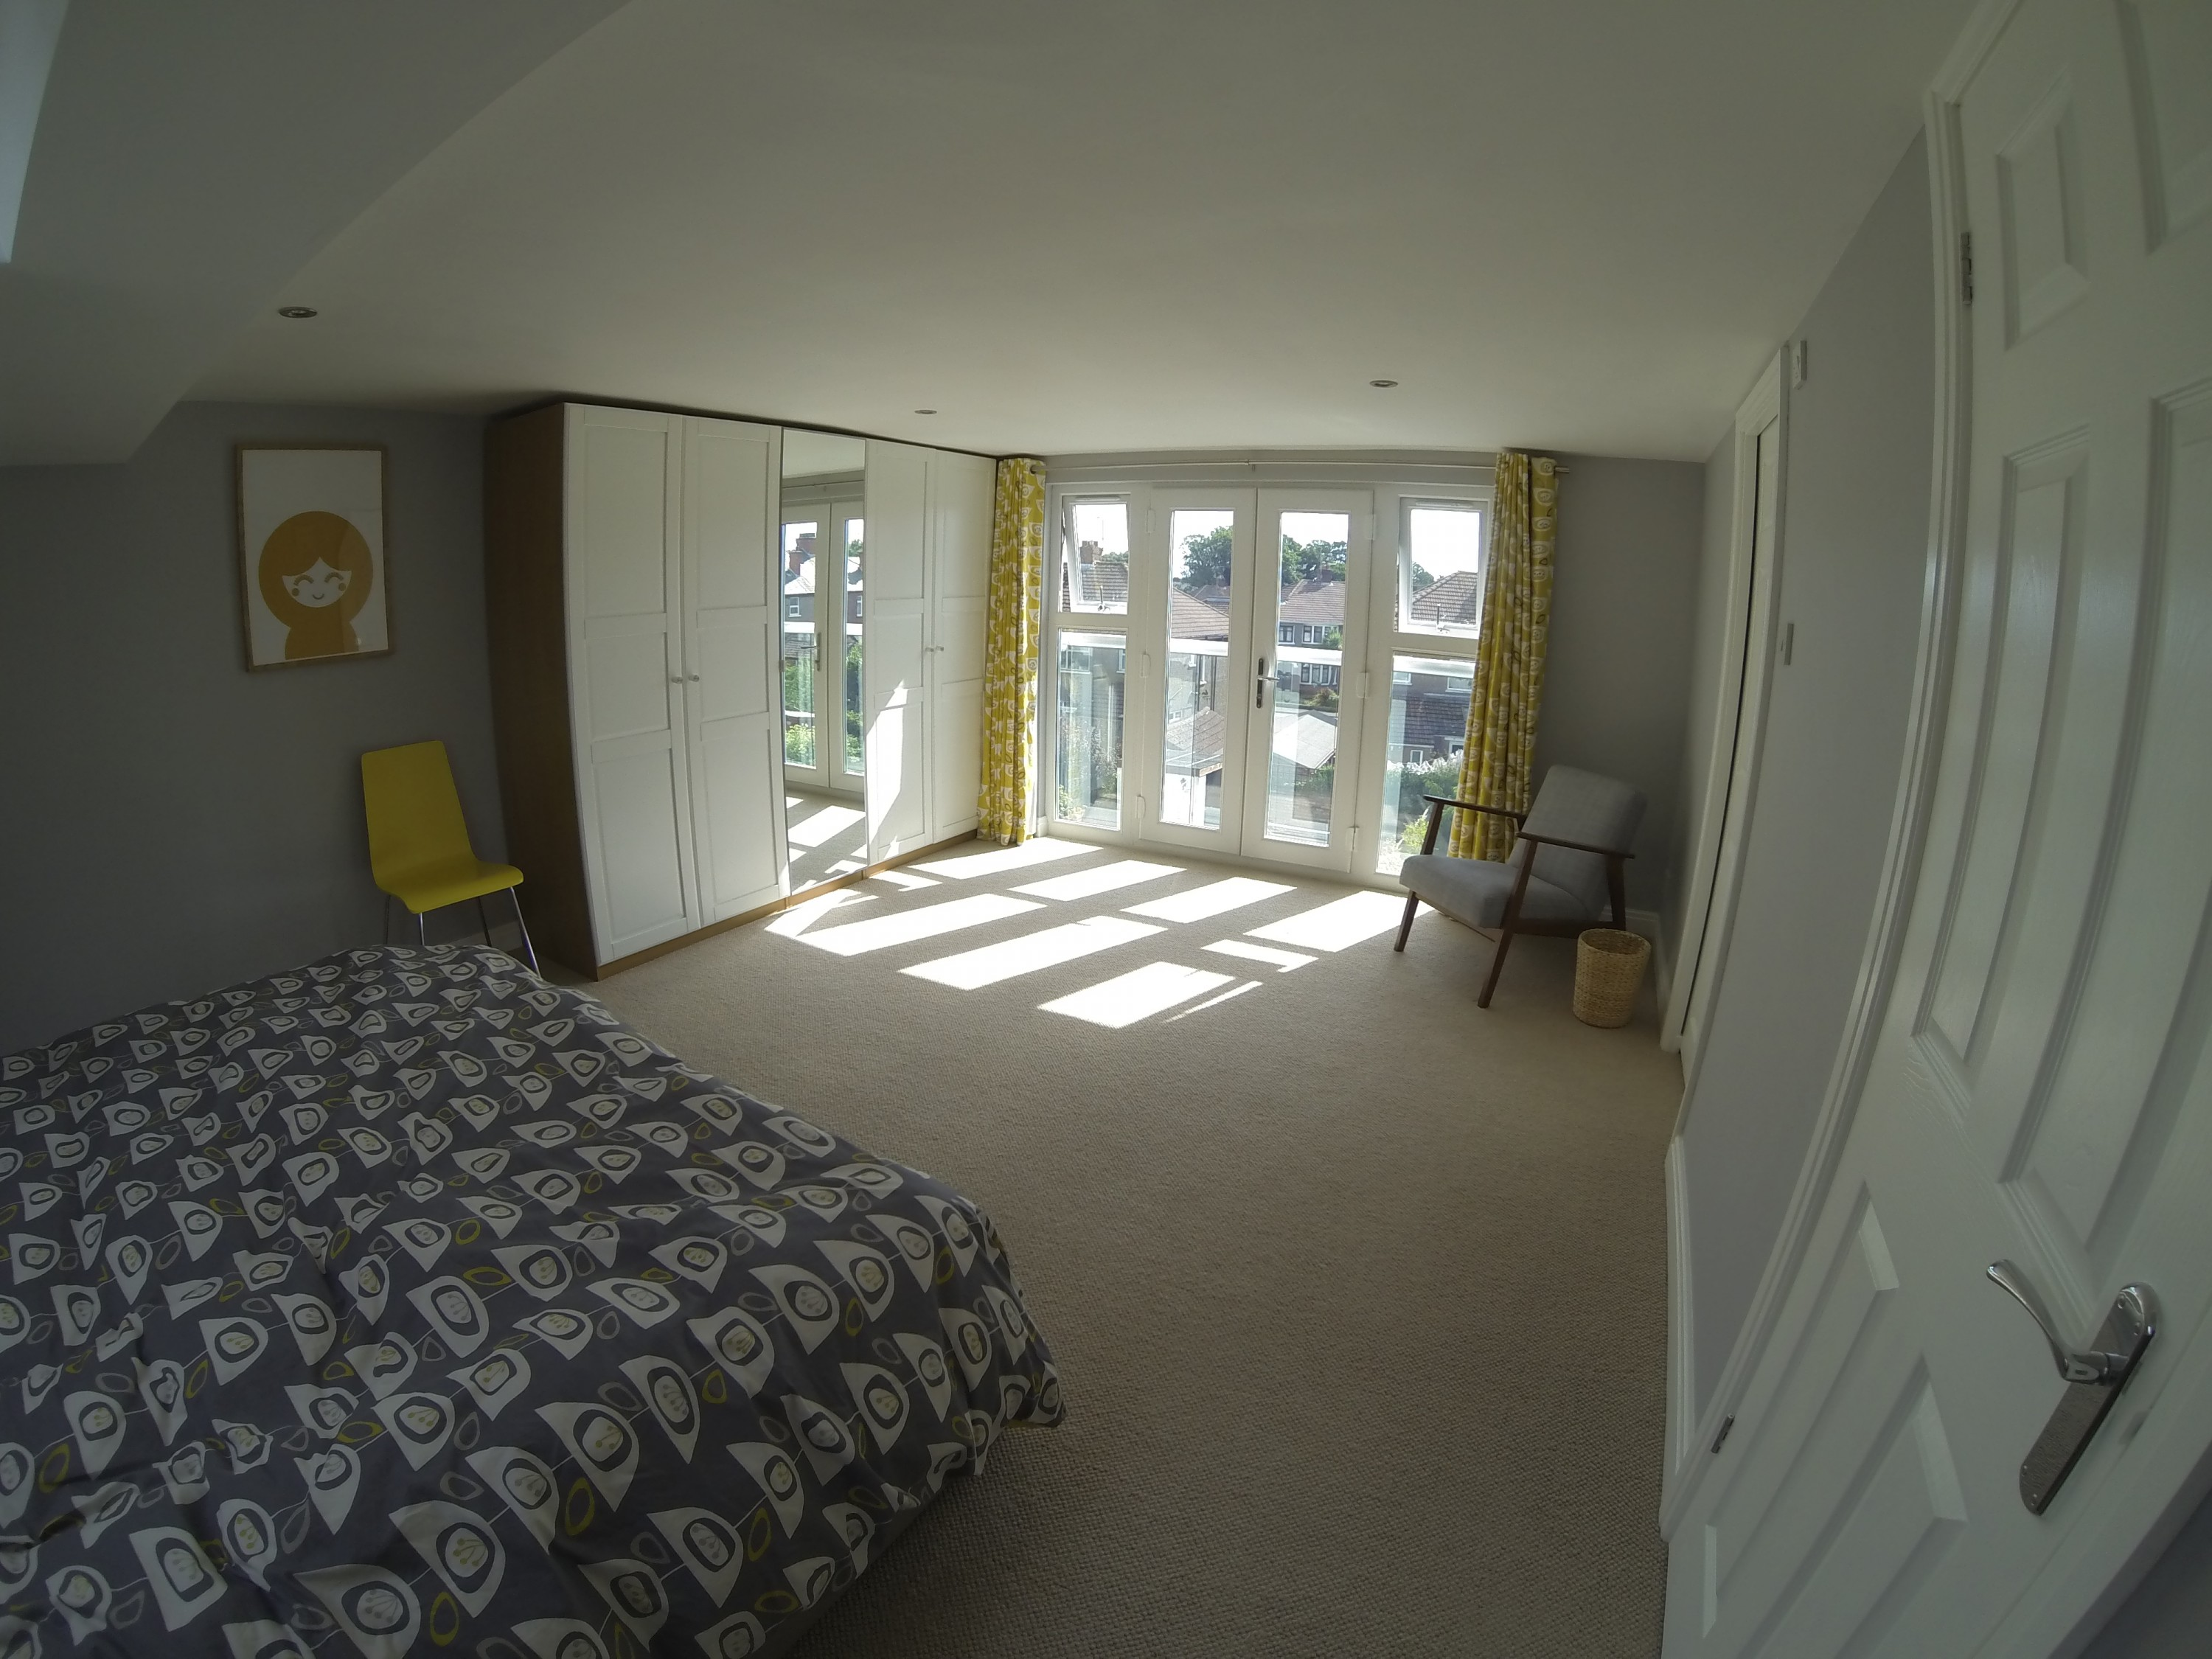 Gallery Loft Conversions Amp Construction Our Projects